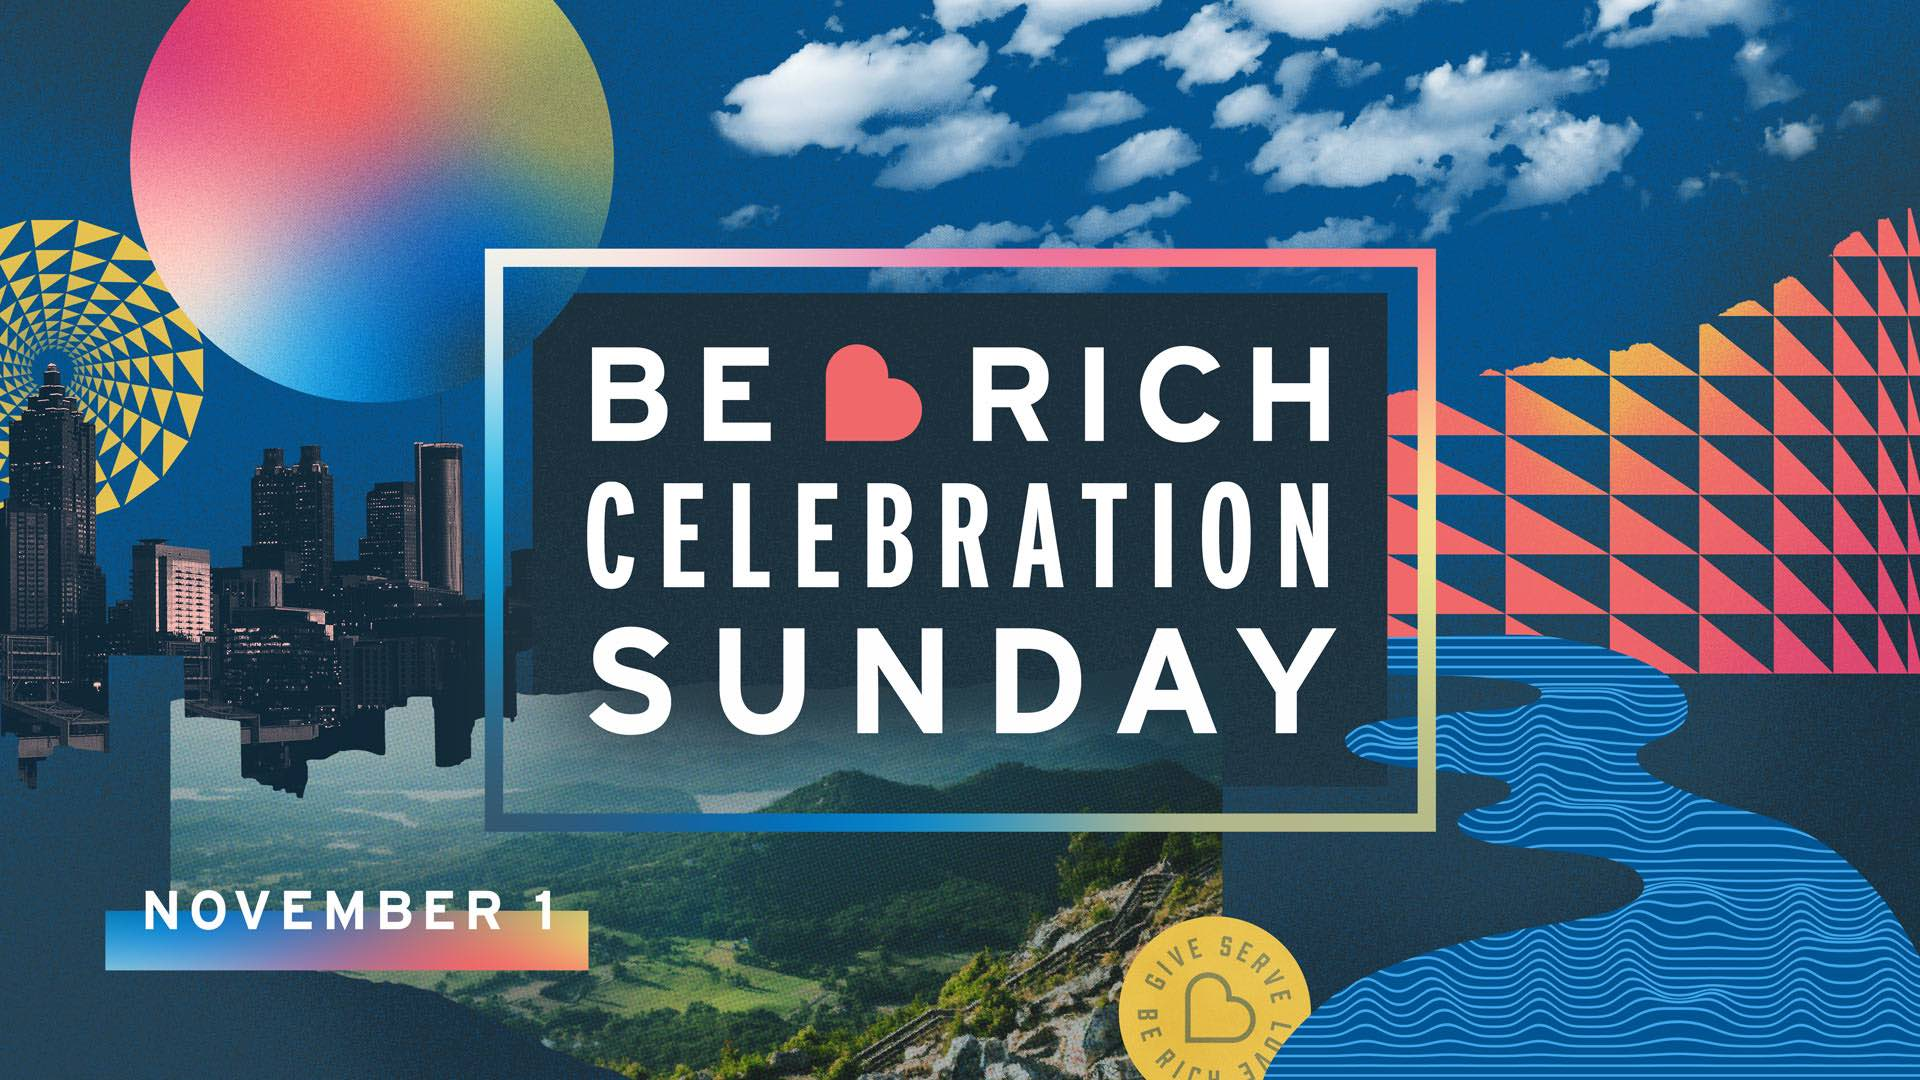 Be Rich Celebration